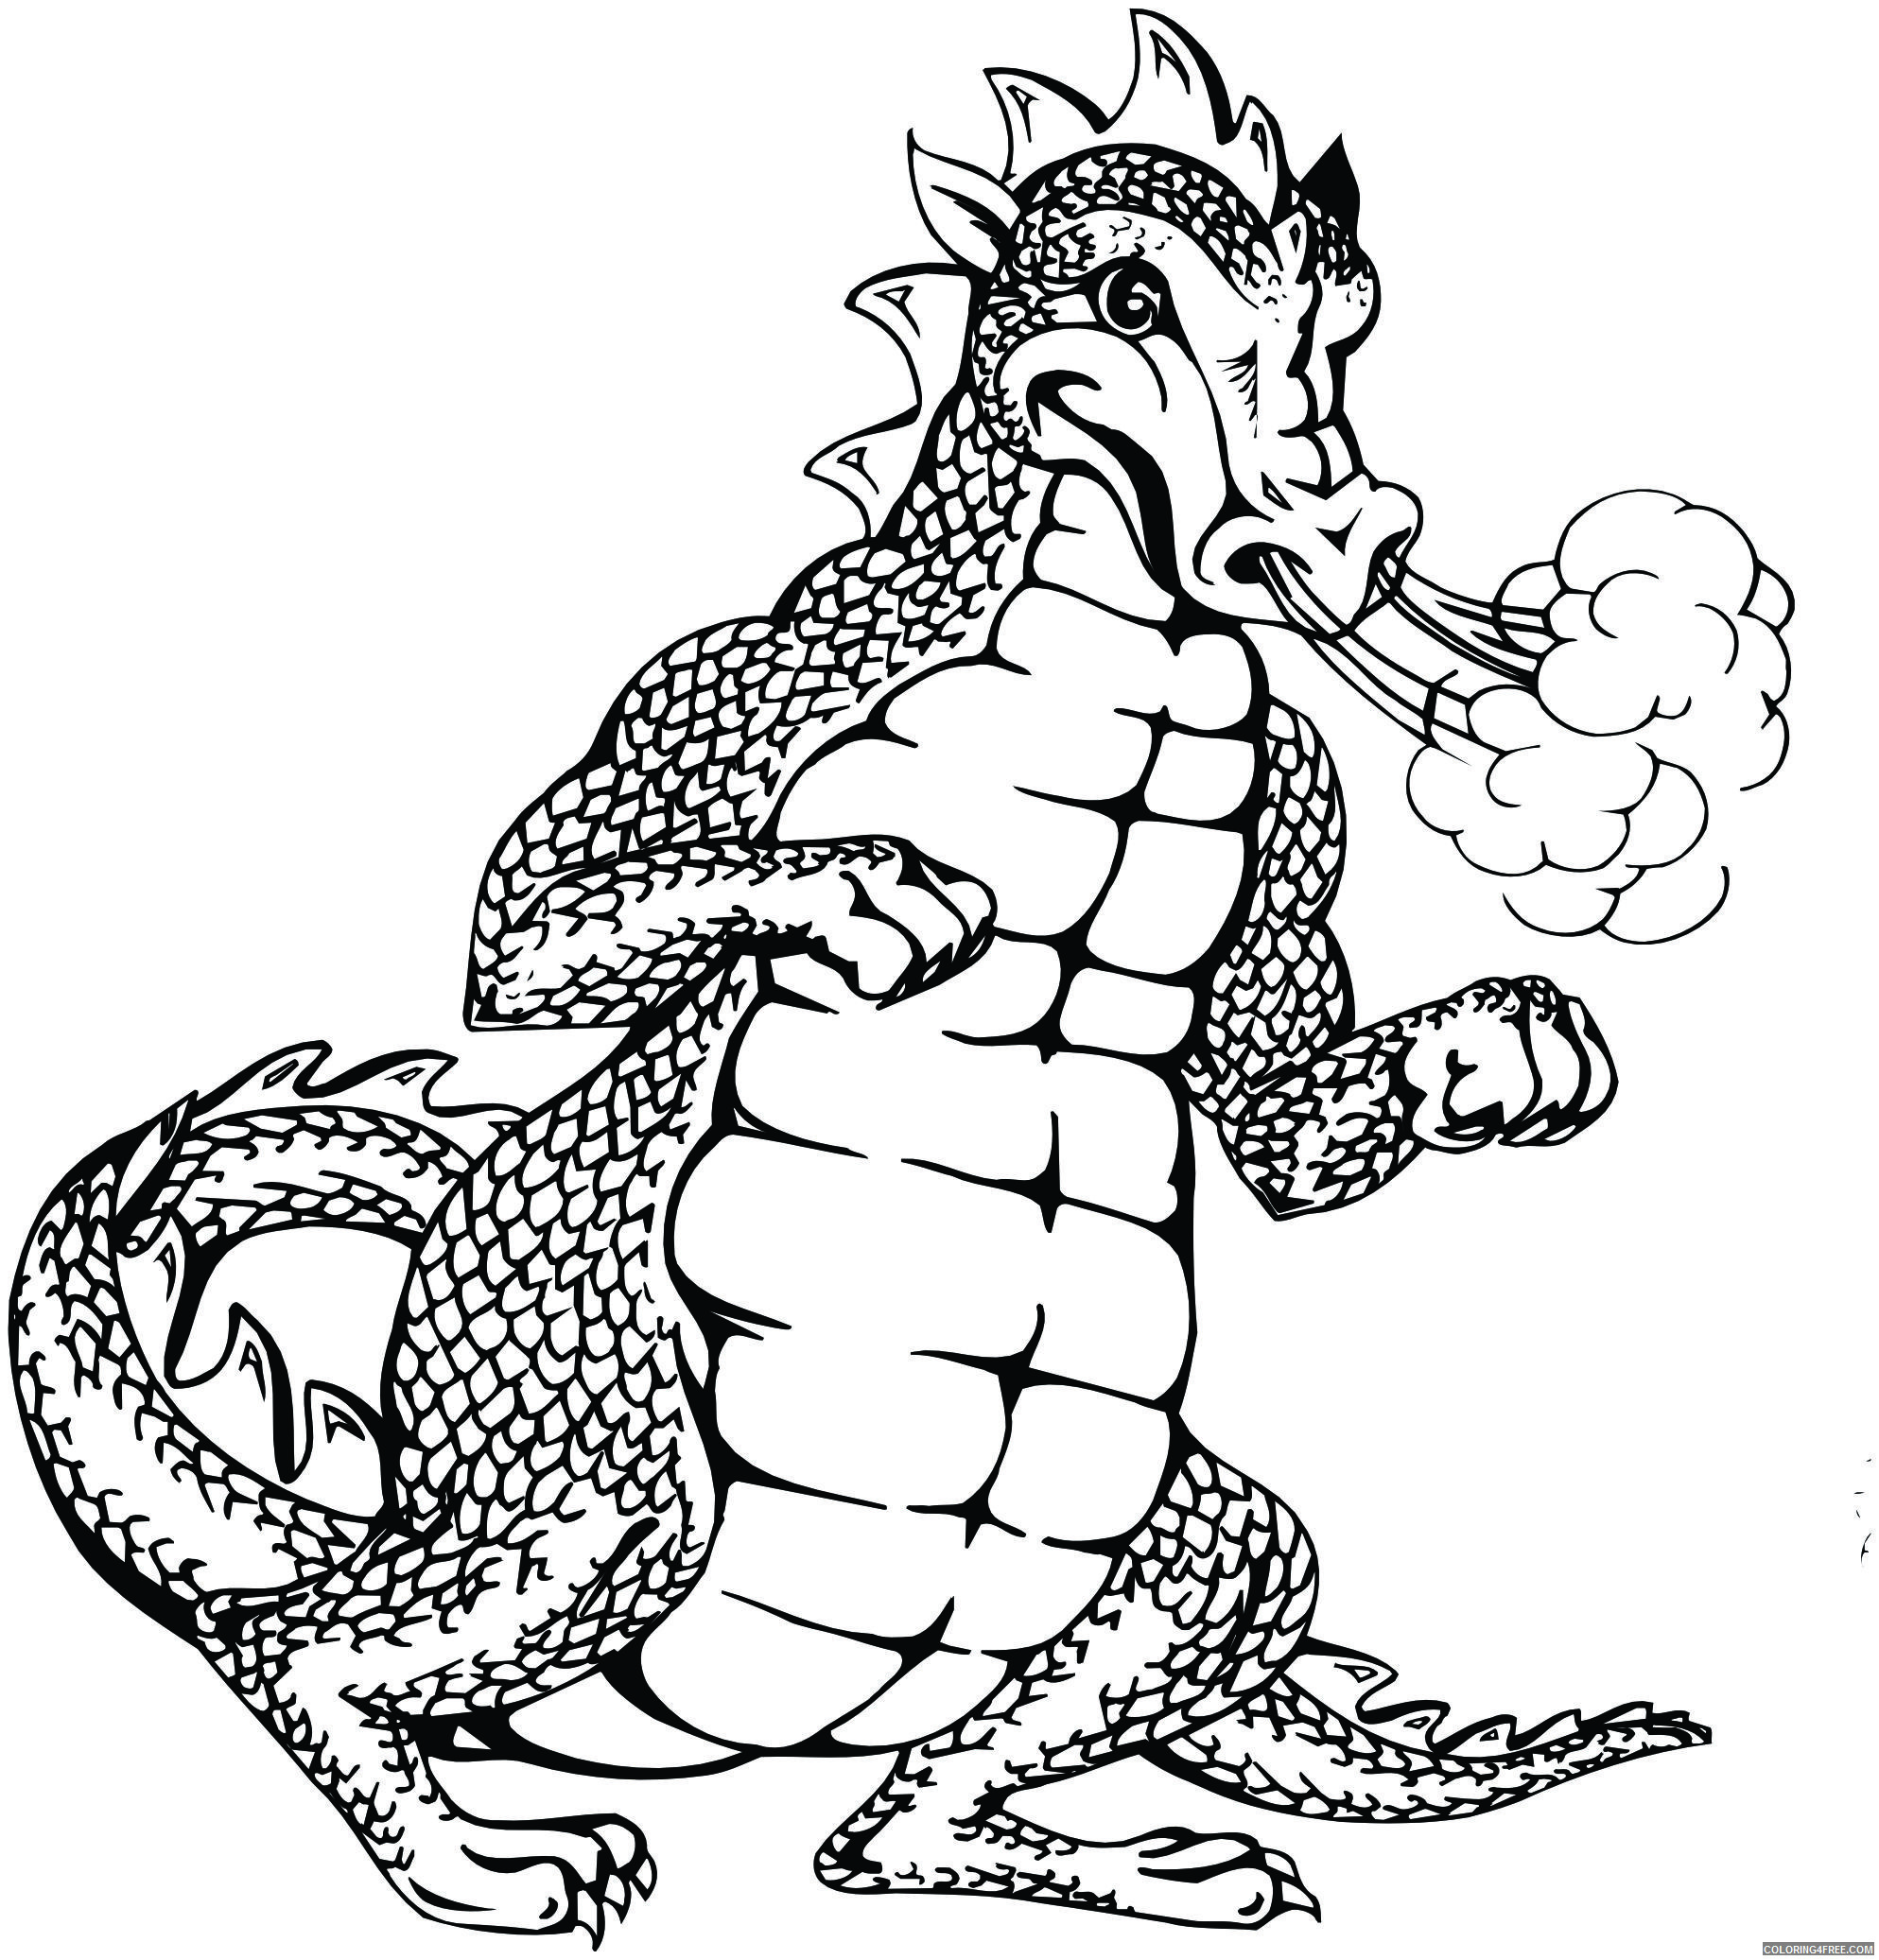 Black and White Dragon Coloring Pages cartoon dragon Printable Coloring4free